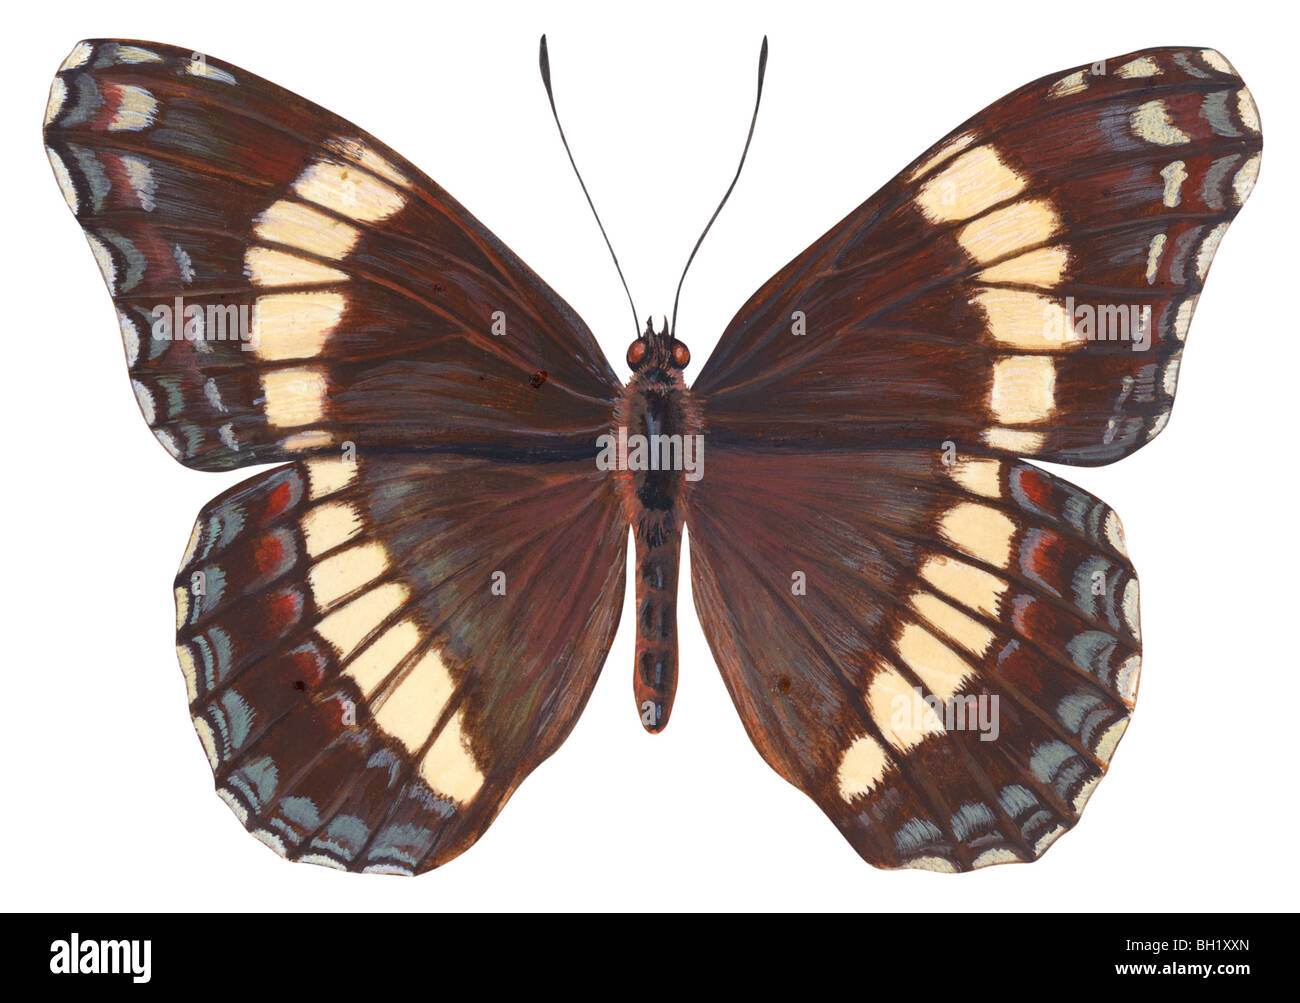 White admiral butterfly - Stock Image